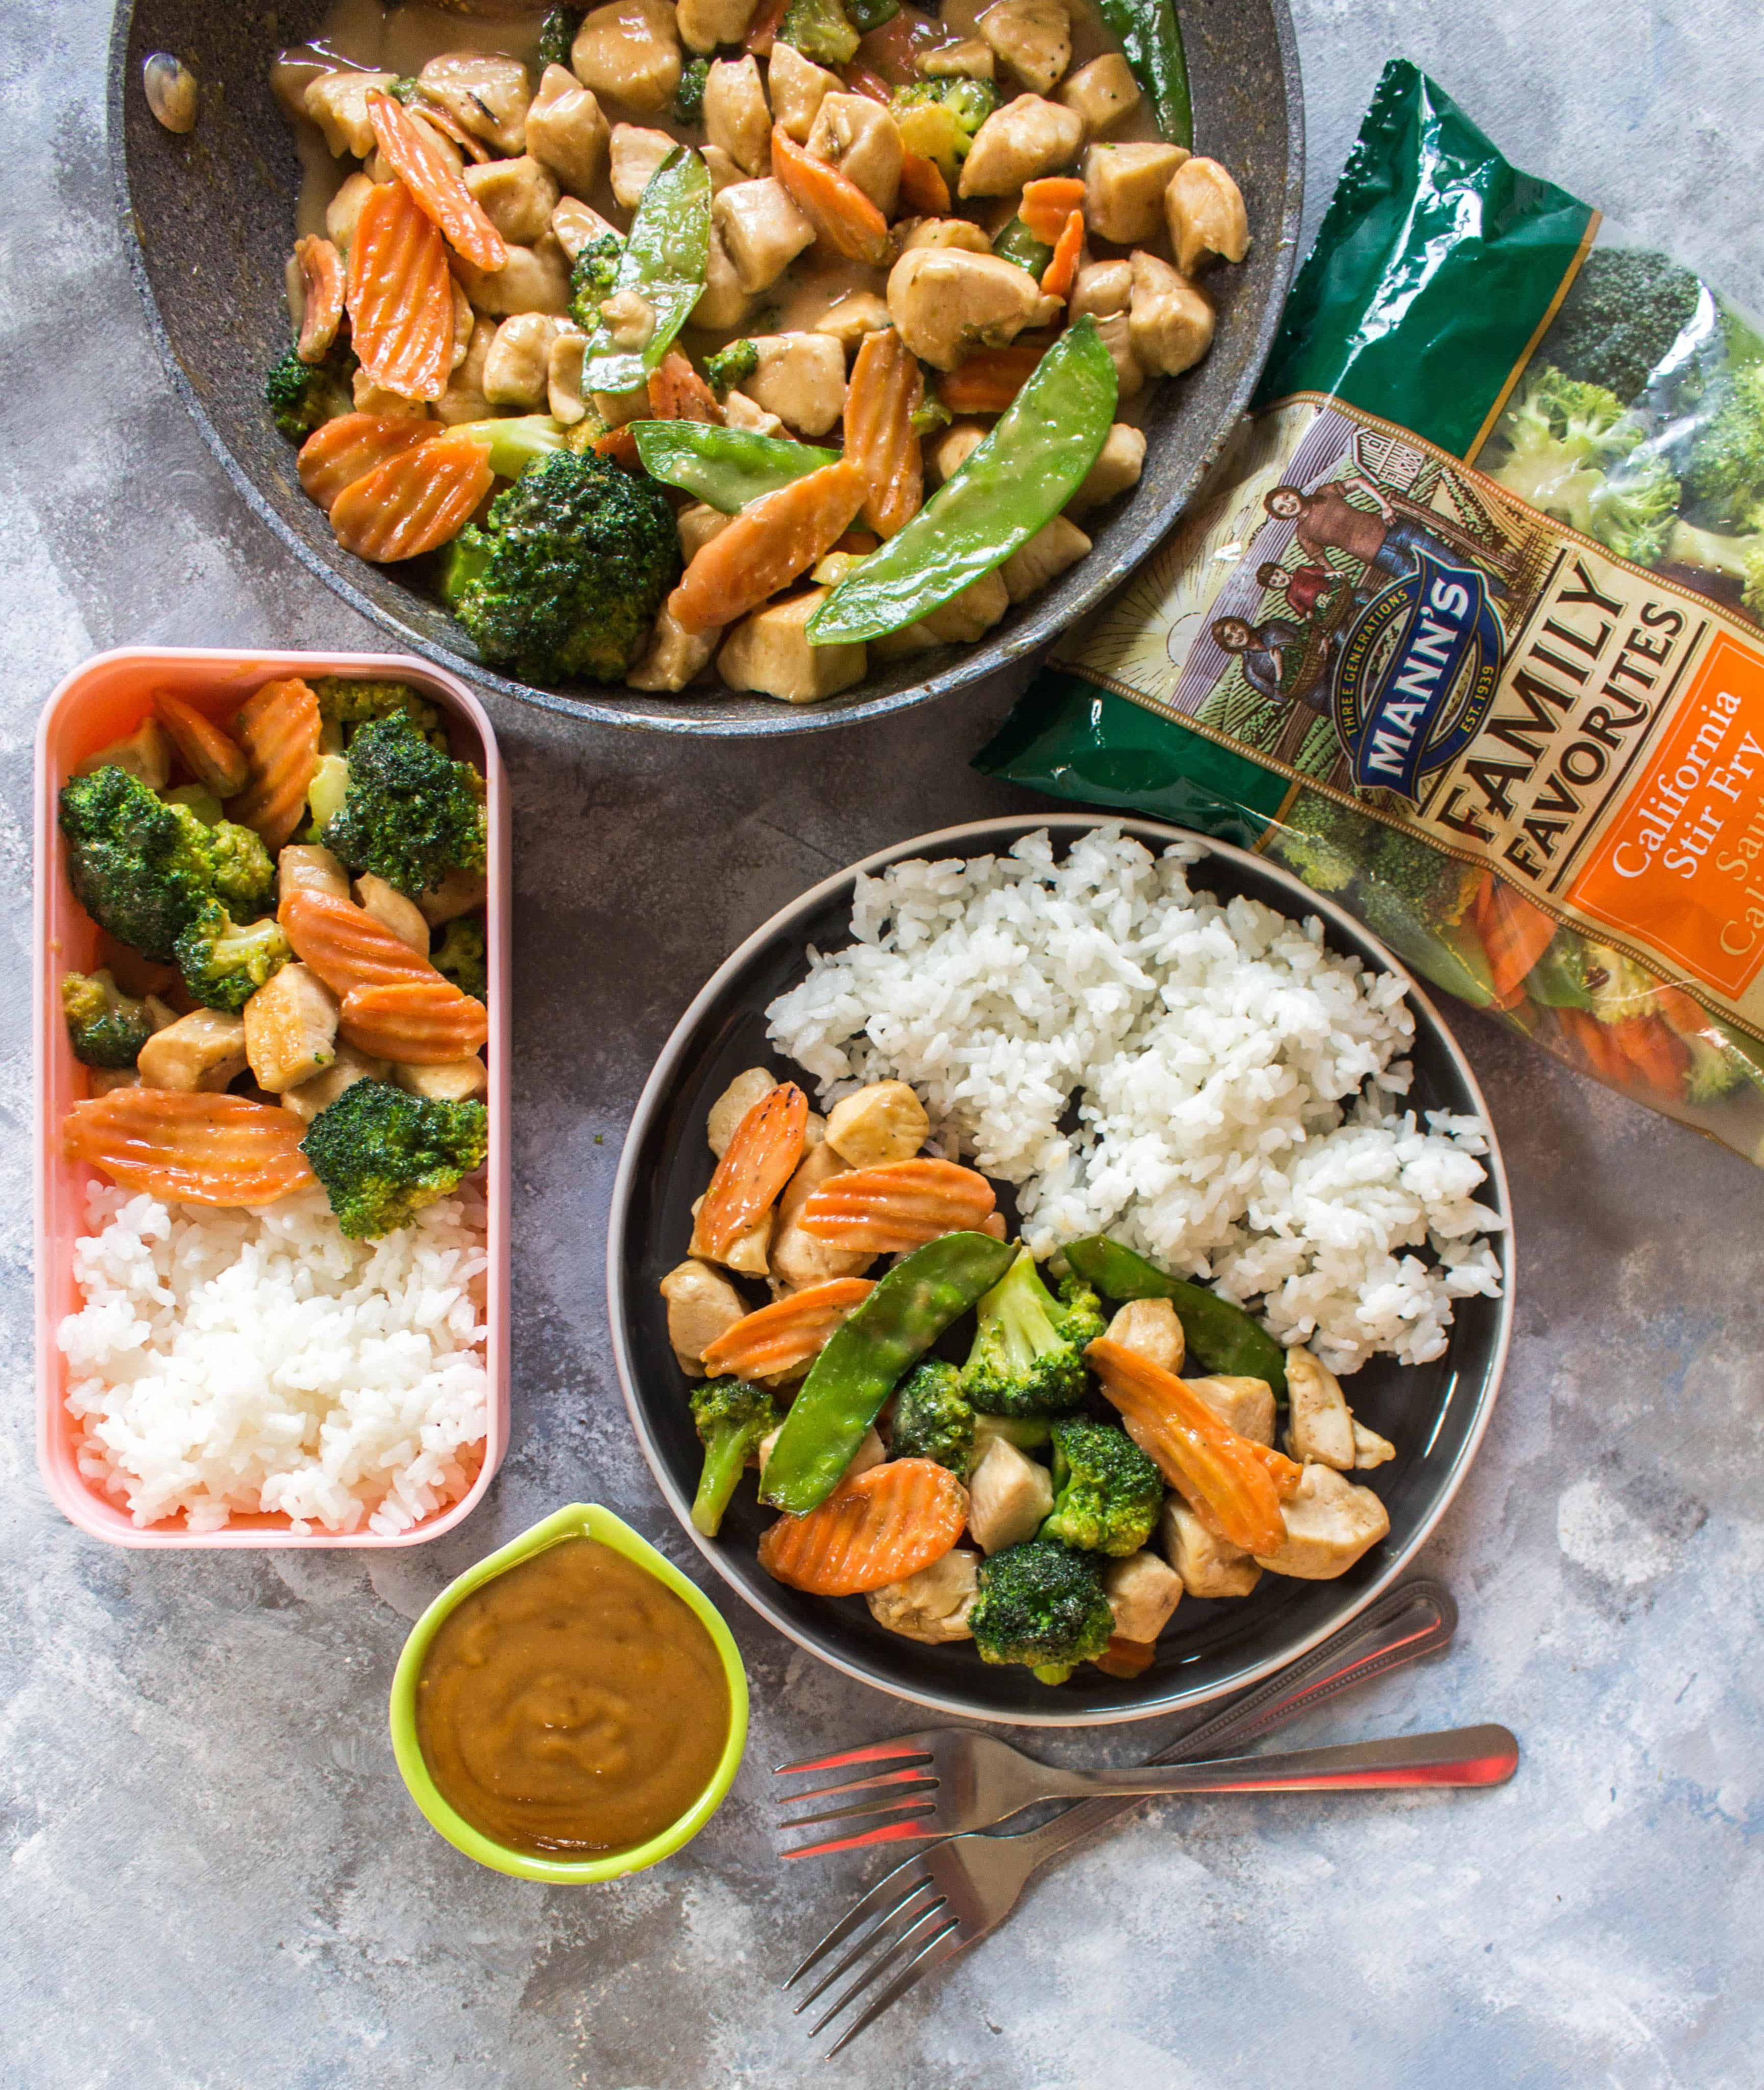 Chicken Stir Fry Meal Prep